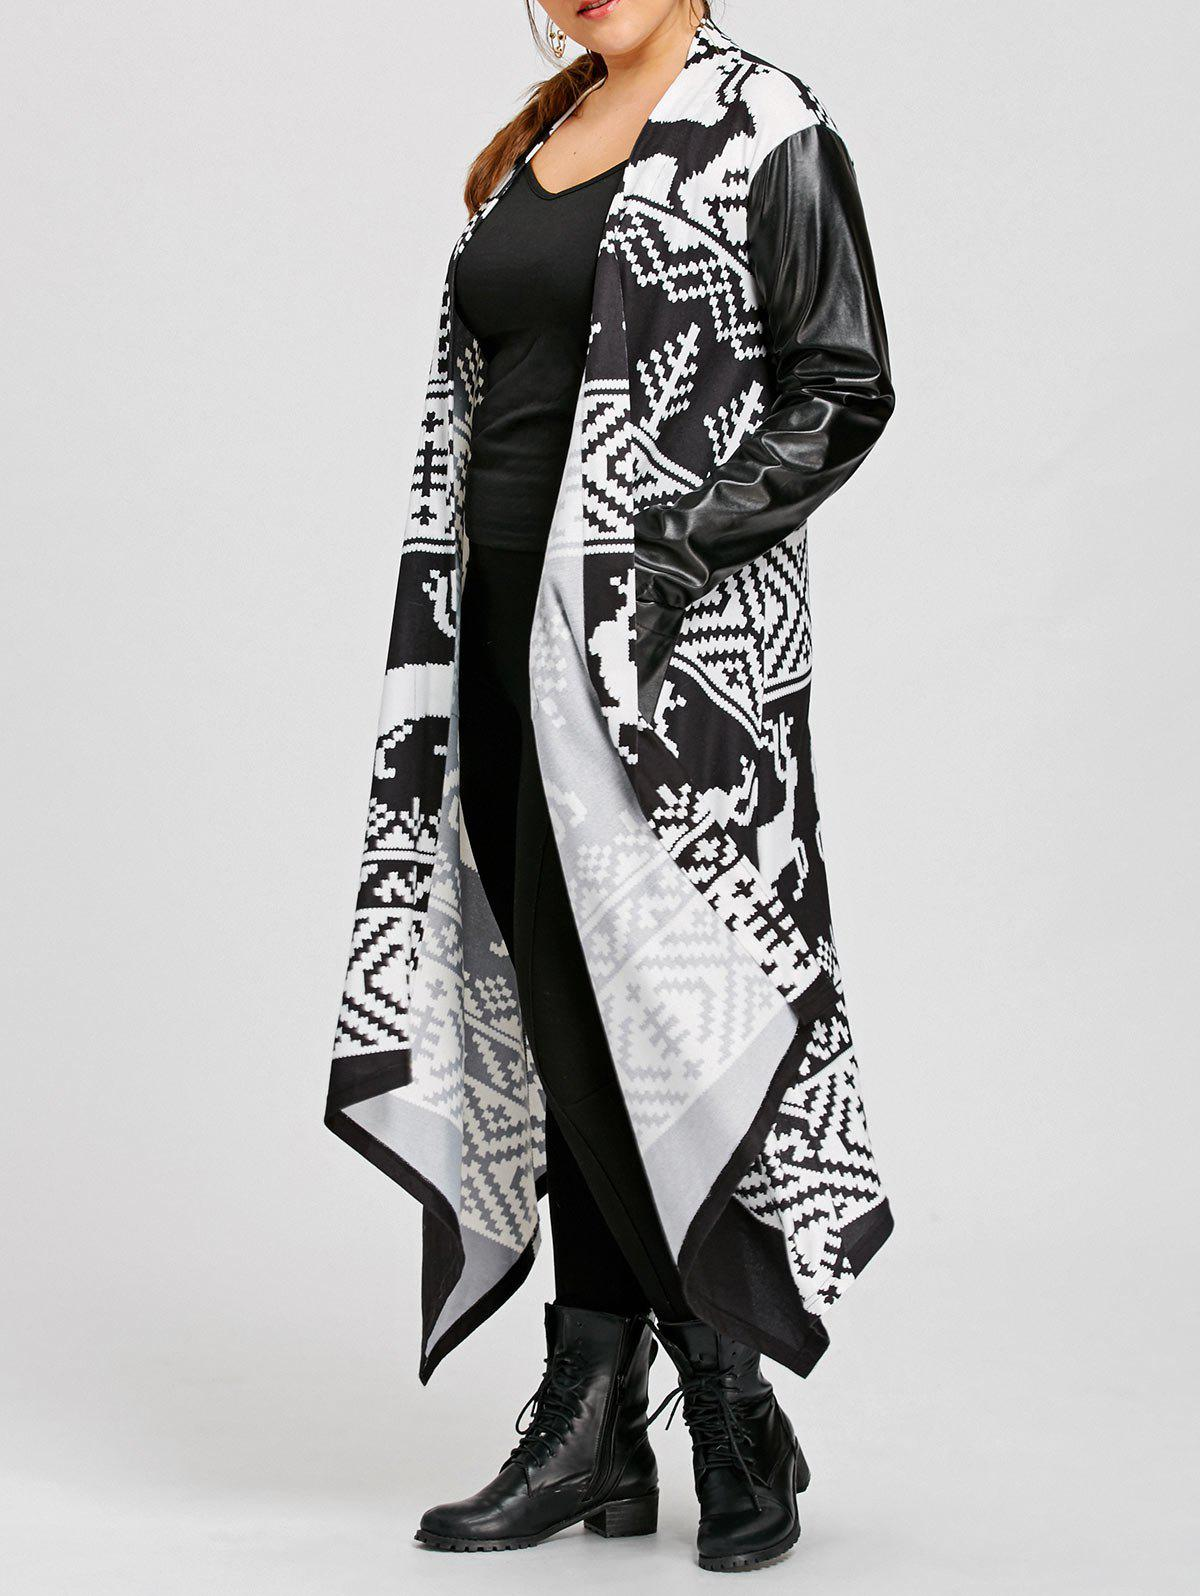 PU Insert Christmas Print Maxi Plus Size CoatWOMEN<br><br>Size: 5XL; Color: WHITE AND BLACK; Clothes Type: Jackets; Material: Acrylic,Polyester; Type: Asymmetric Length; Shirt Length: Long; Sleeve Length: Full; Collar: Collarless; Pattern Type: Patchwork; Style: Fashion; Season: Fall,Spring; Weight: 0.6500kg; Package Contents: 1 x Coat;